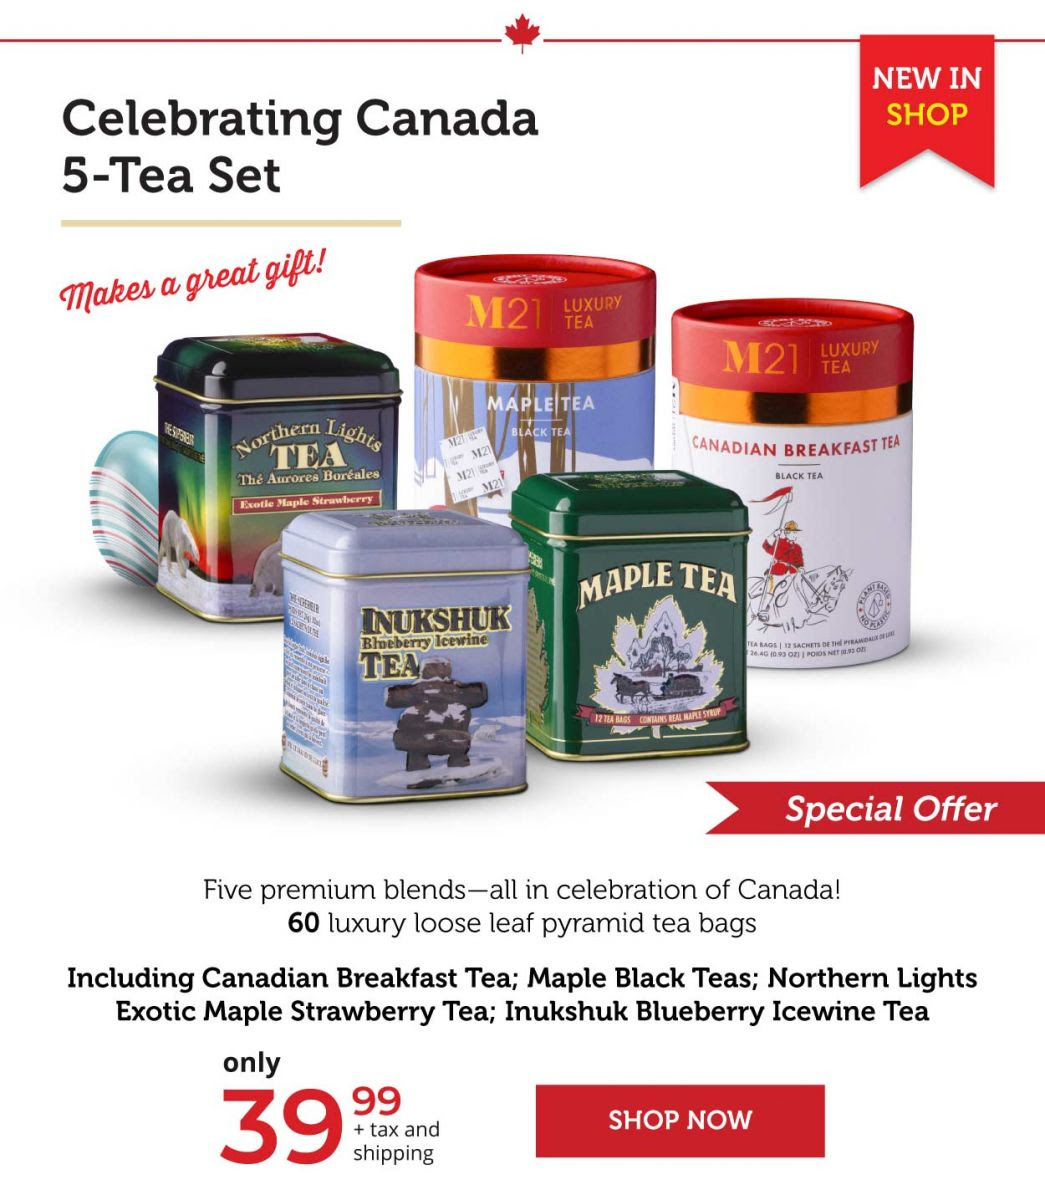 Celebrating Canada 5-Tea Set